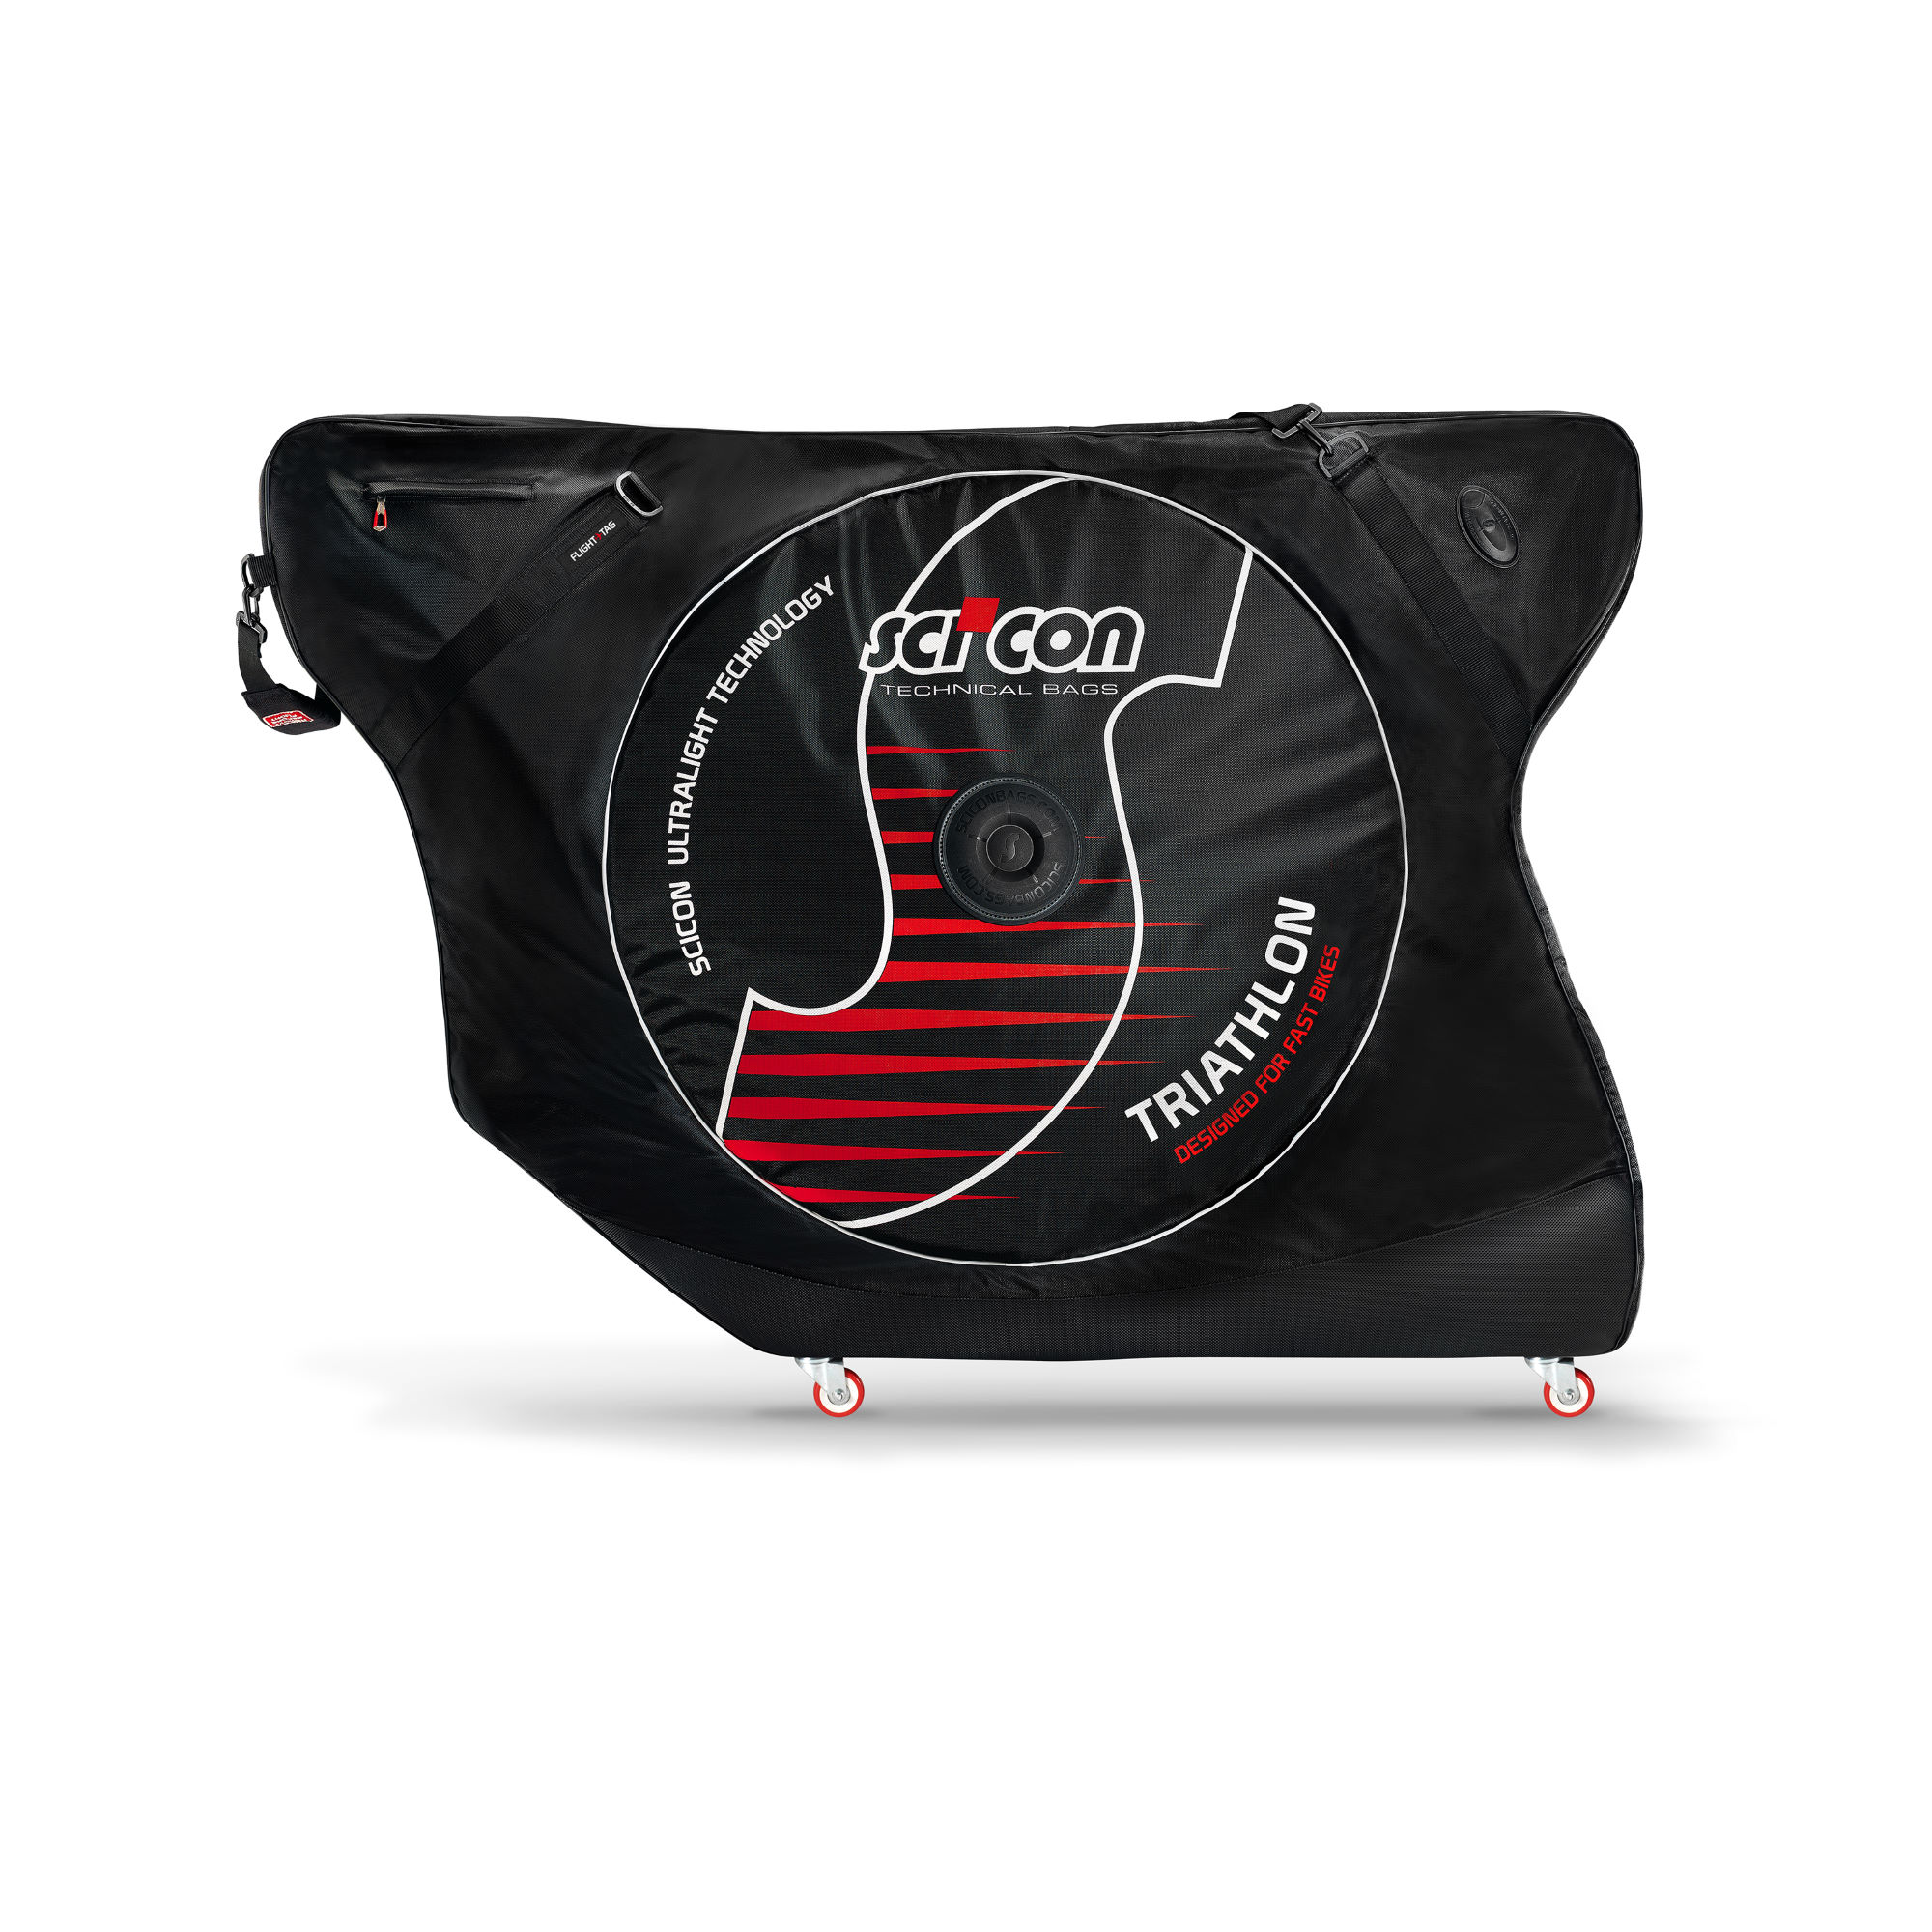 housses de v 233 lo souples scicon aerocomfort triathlon bike bag wiggle